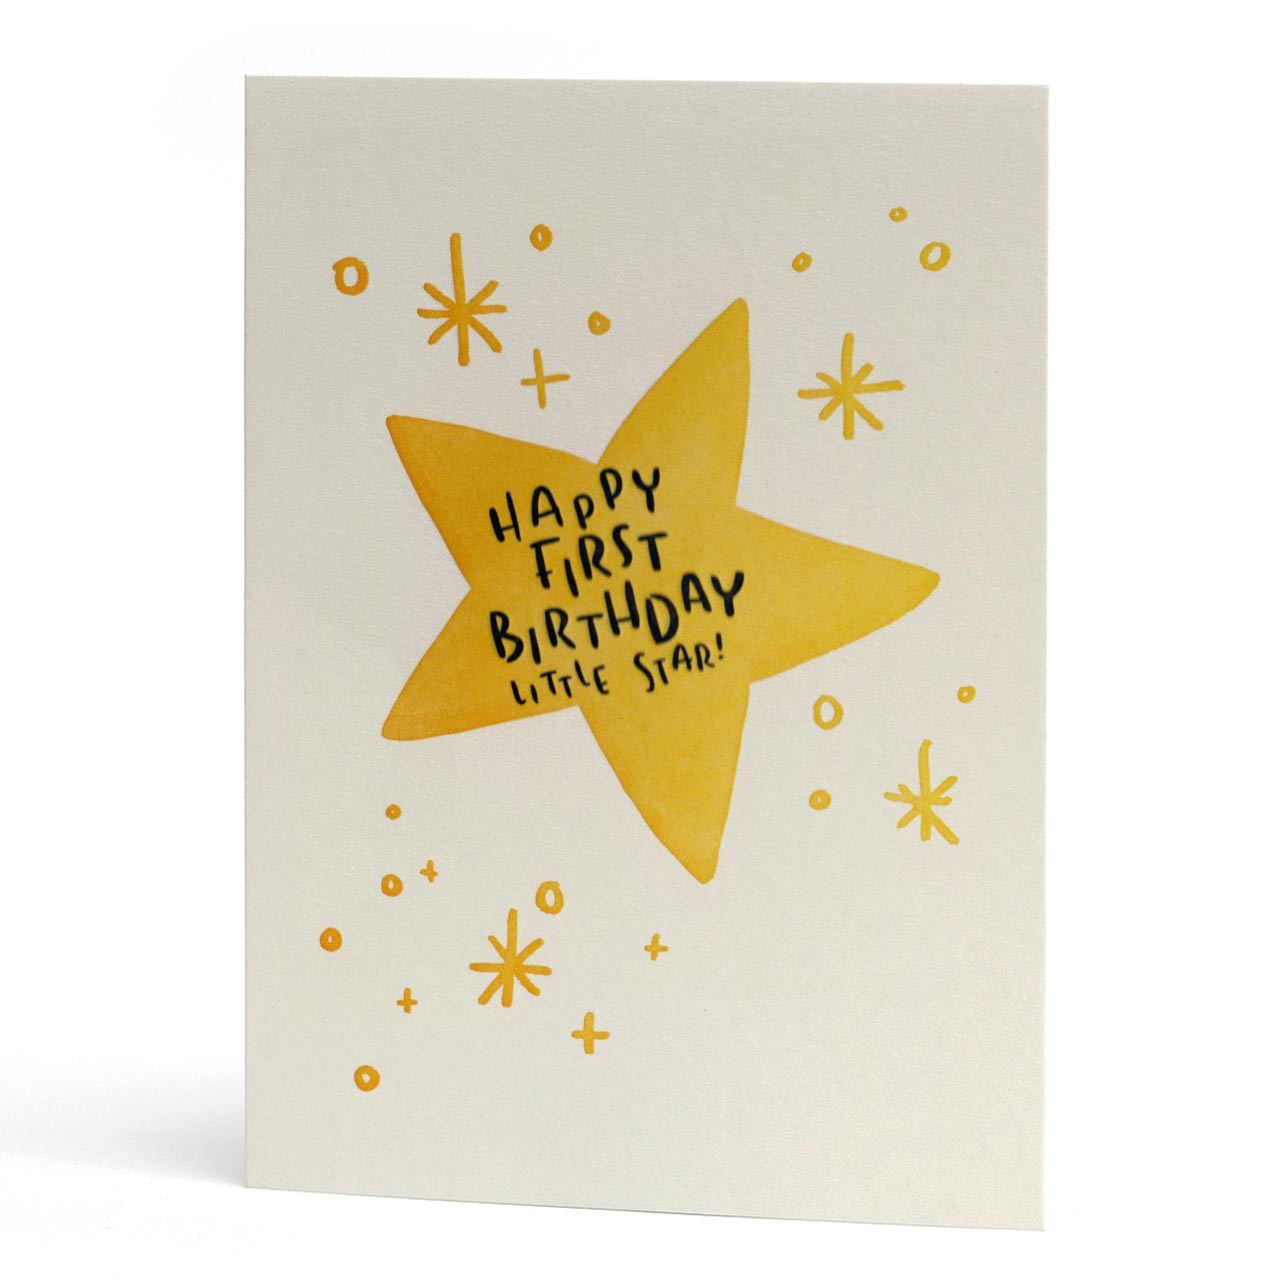 Happy First Birthday Little Star Letterpress Card